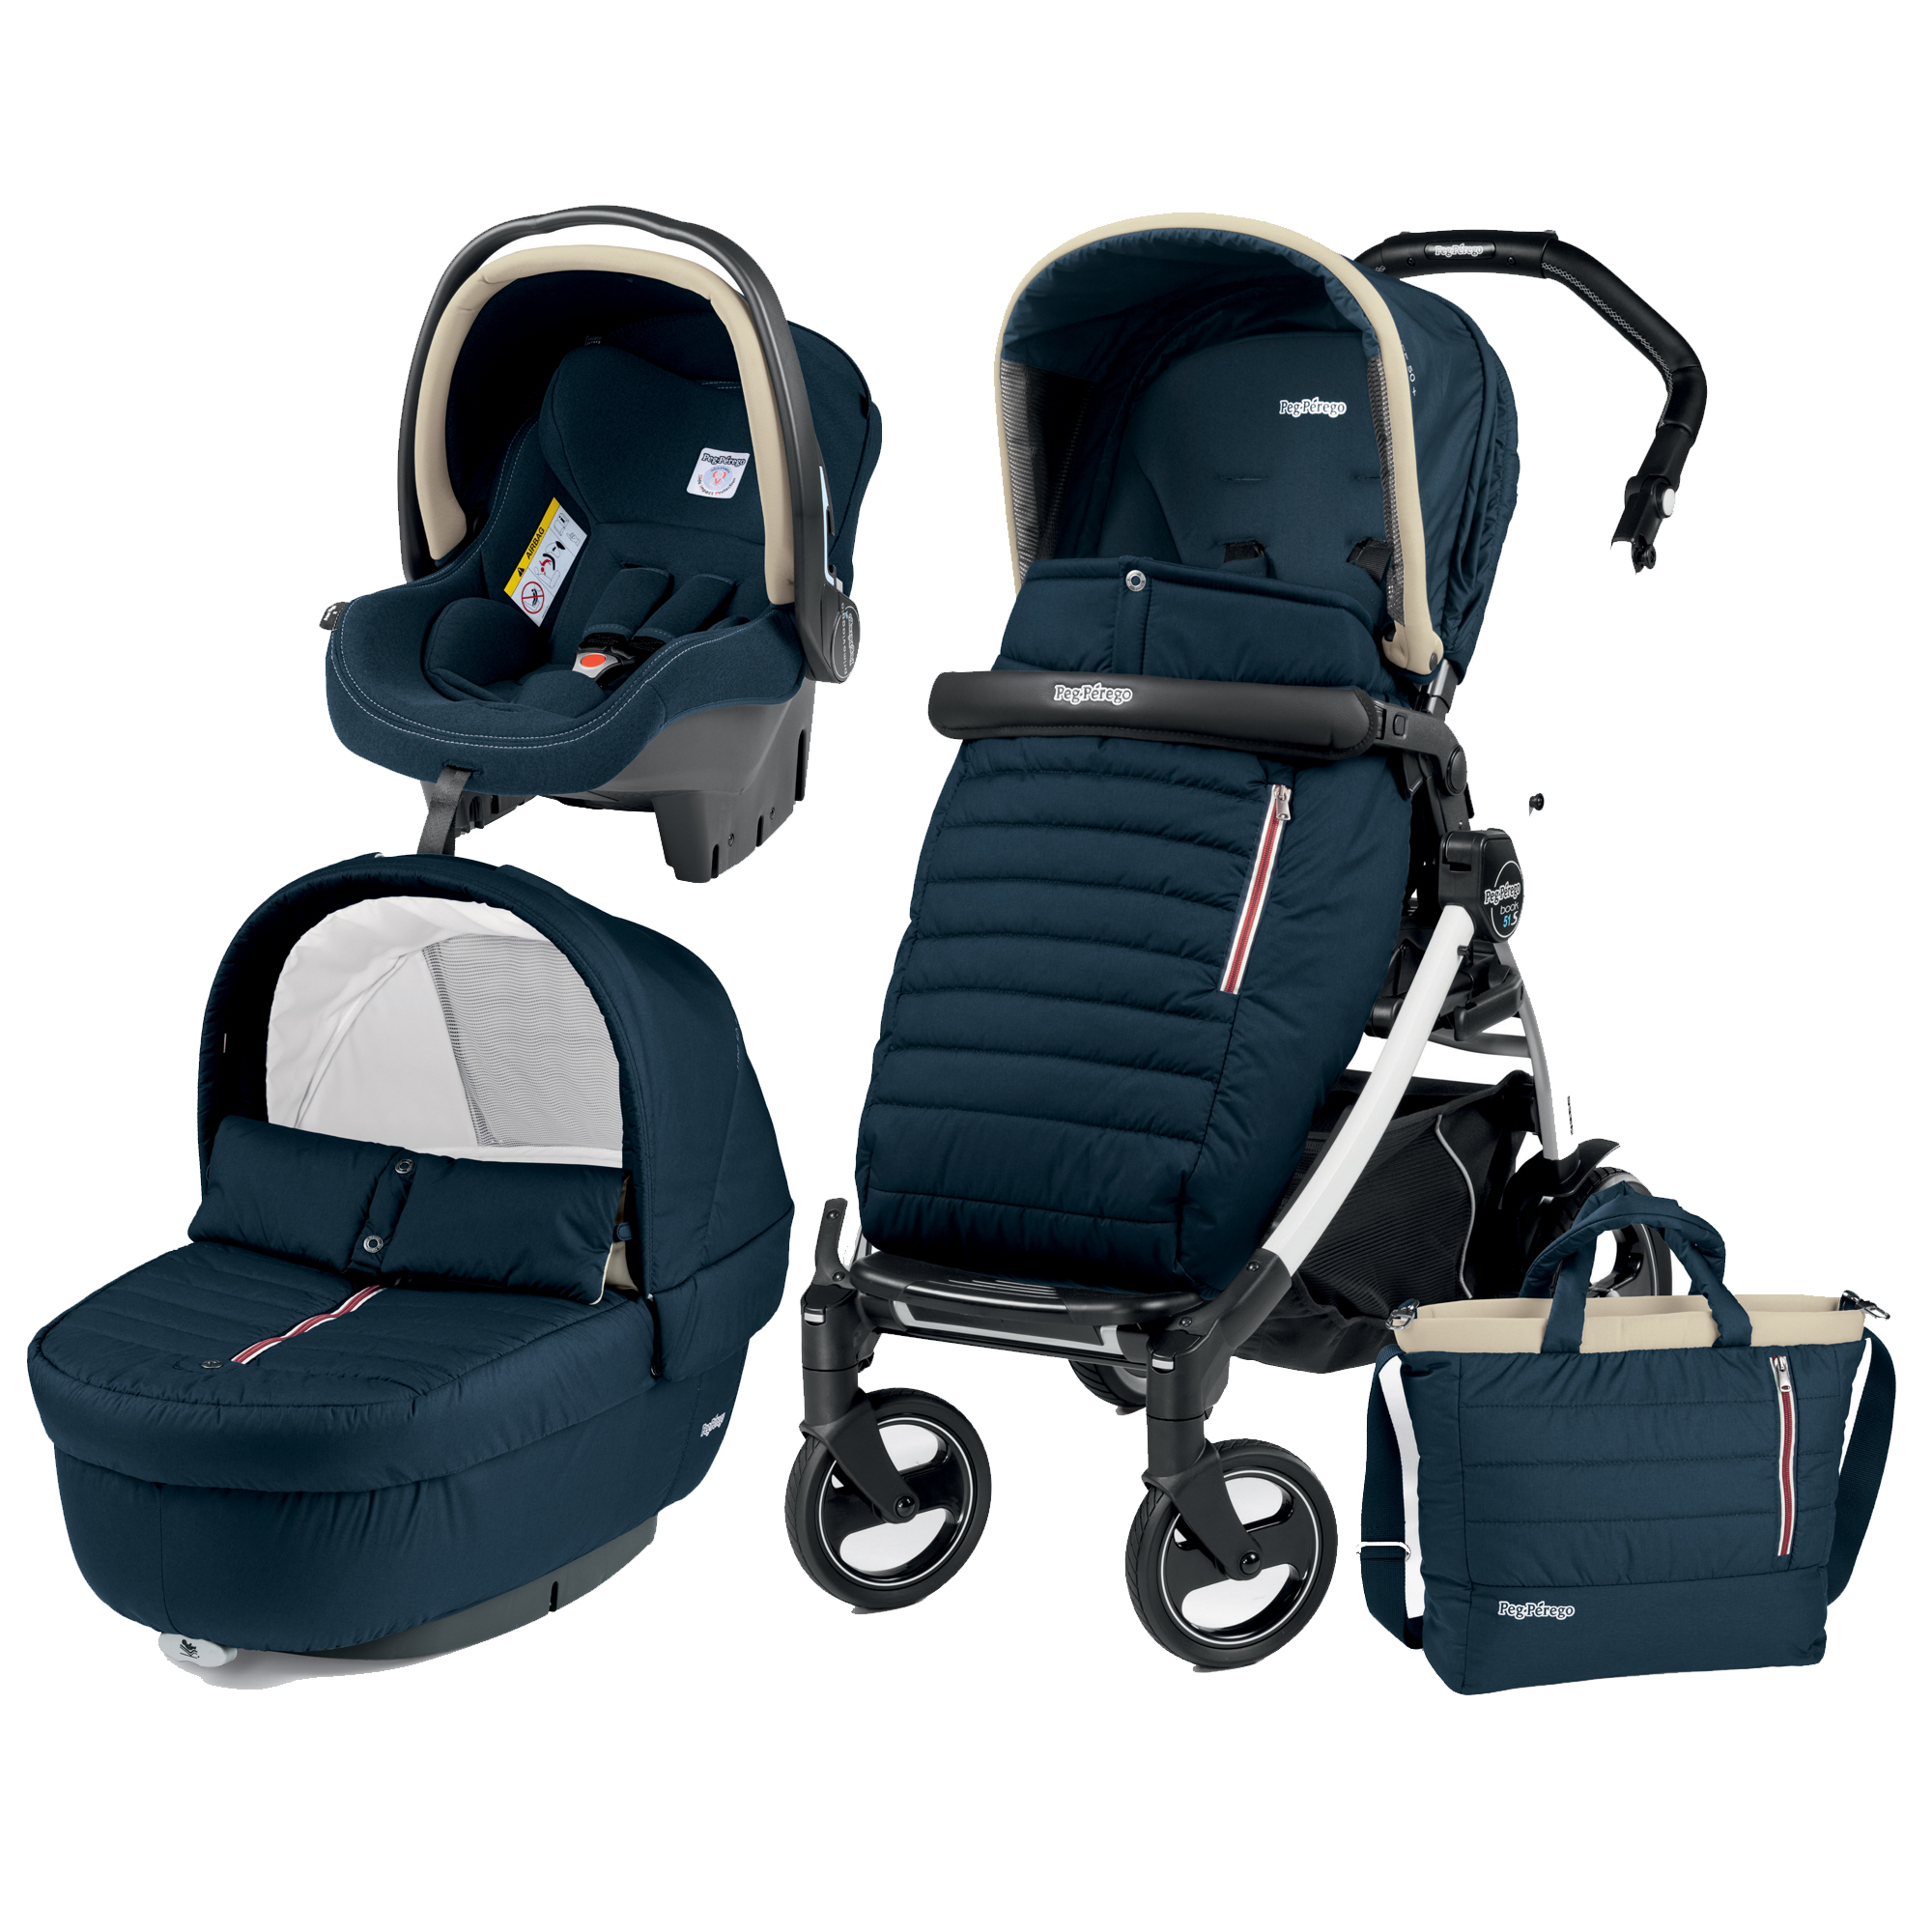 Carucior 3 in 1, Peg Perego, Book Plus 51 S, Black&White, Breeze